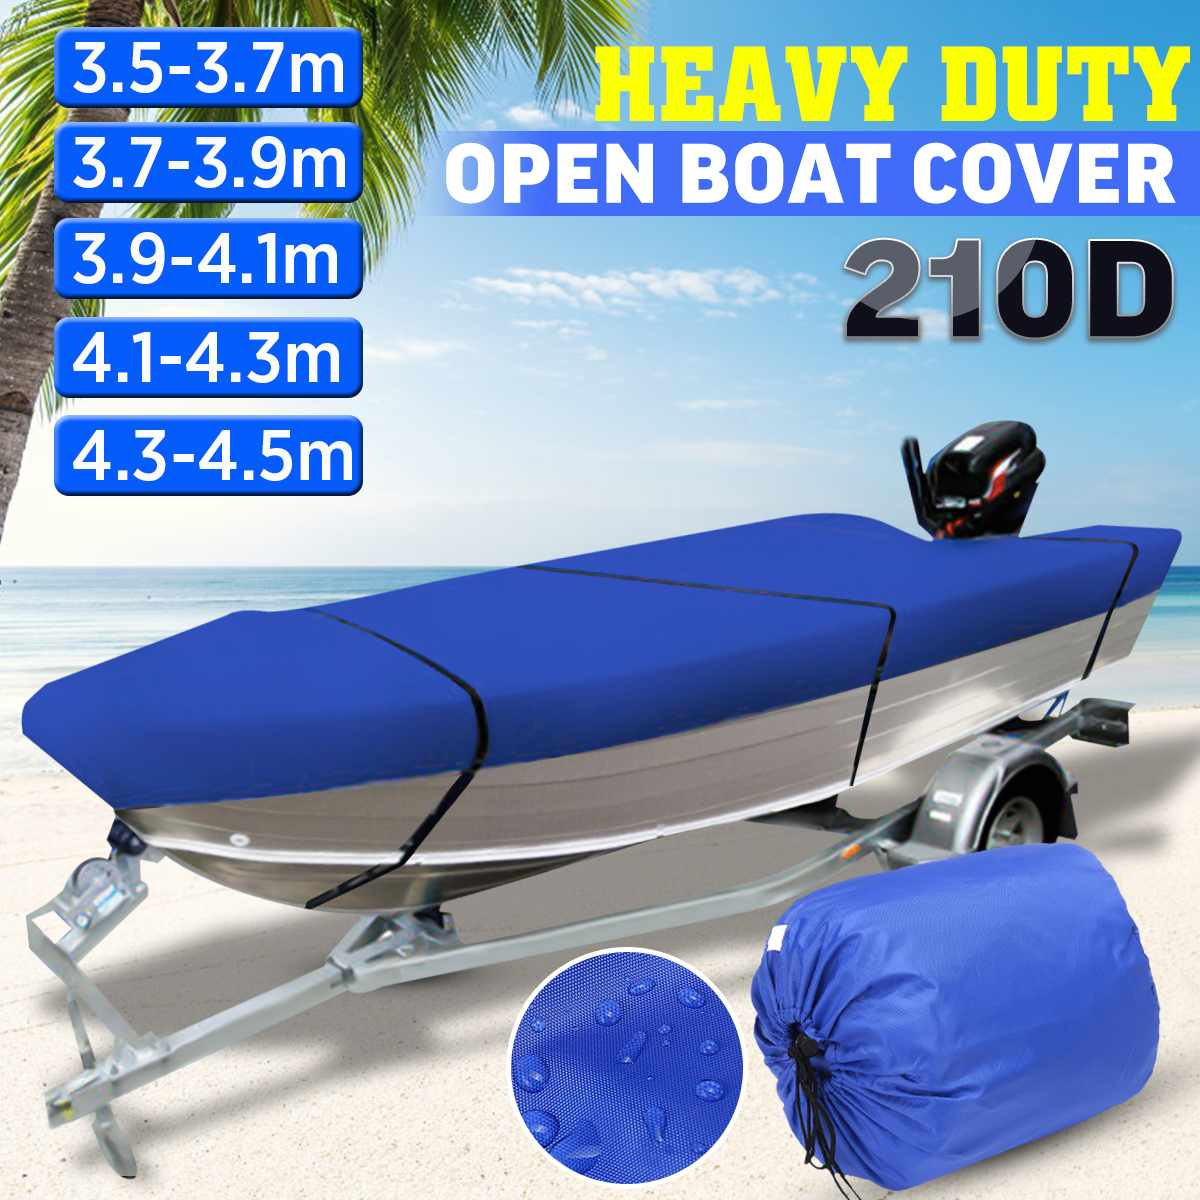 3.5-4.5m Trailerable Heavy Duty Open Boat Cover Fishing Ski Runabout Waterproof 210D Sunproof Anti UV V-Hull Boat Cover